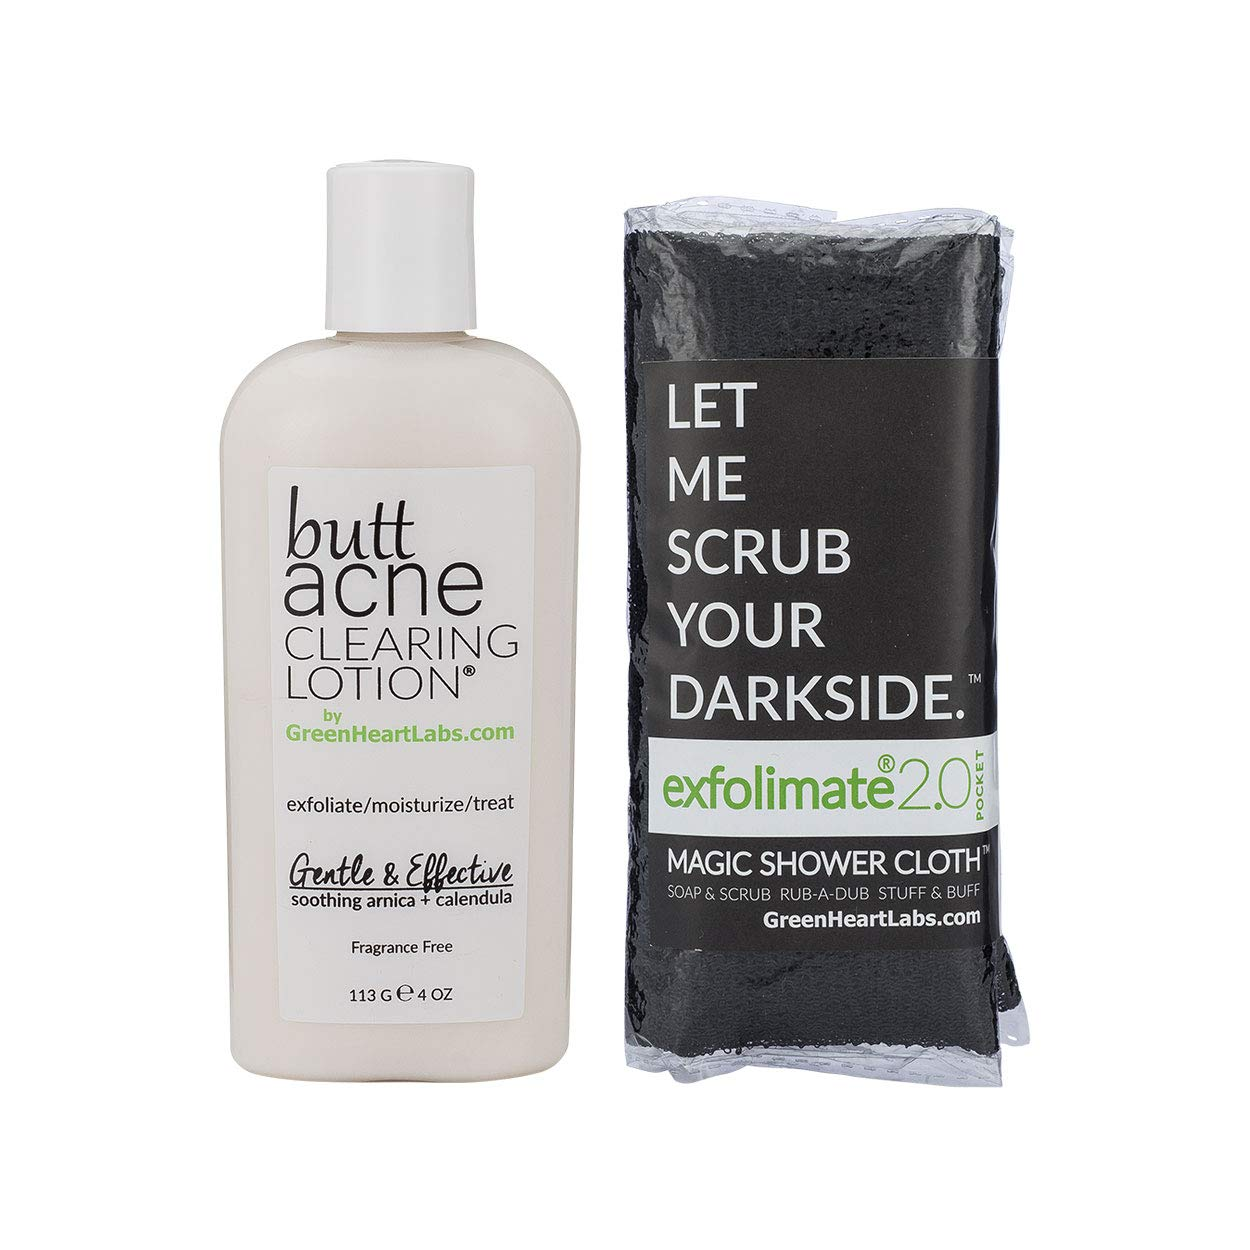 Brilliant Booty Kit | Butt Acne Clearing Lotion and ExfoliMATE Magic Body Exfoliating Cloth for Soft & Young Skin (Black) by Green Heart Labs